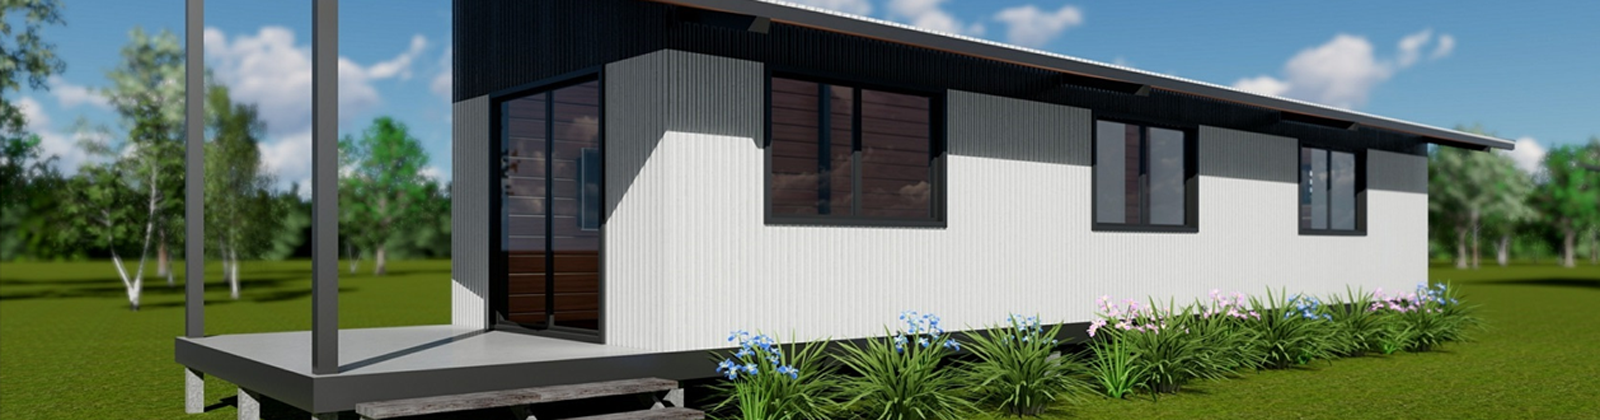 transportable homes and tiny houses darwin, built for the tropics by Darwin Builders